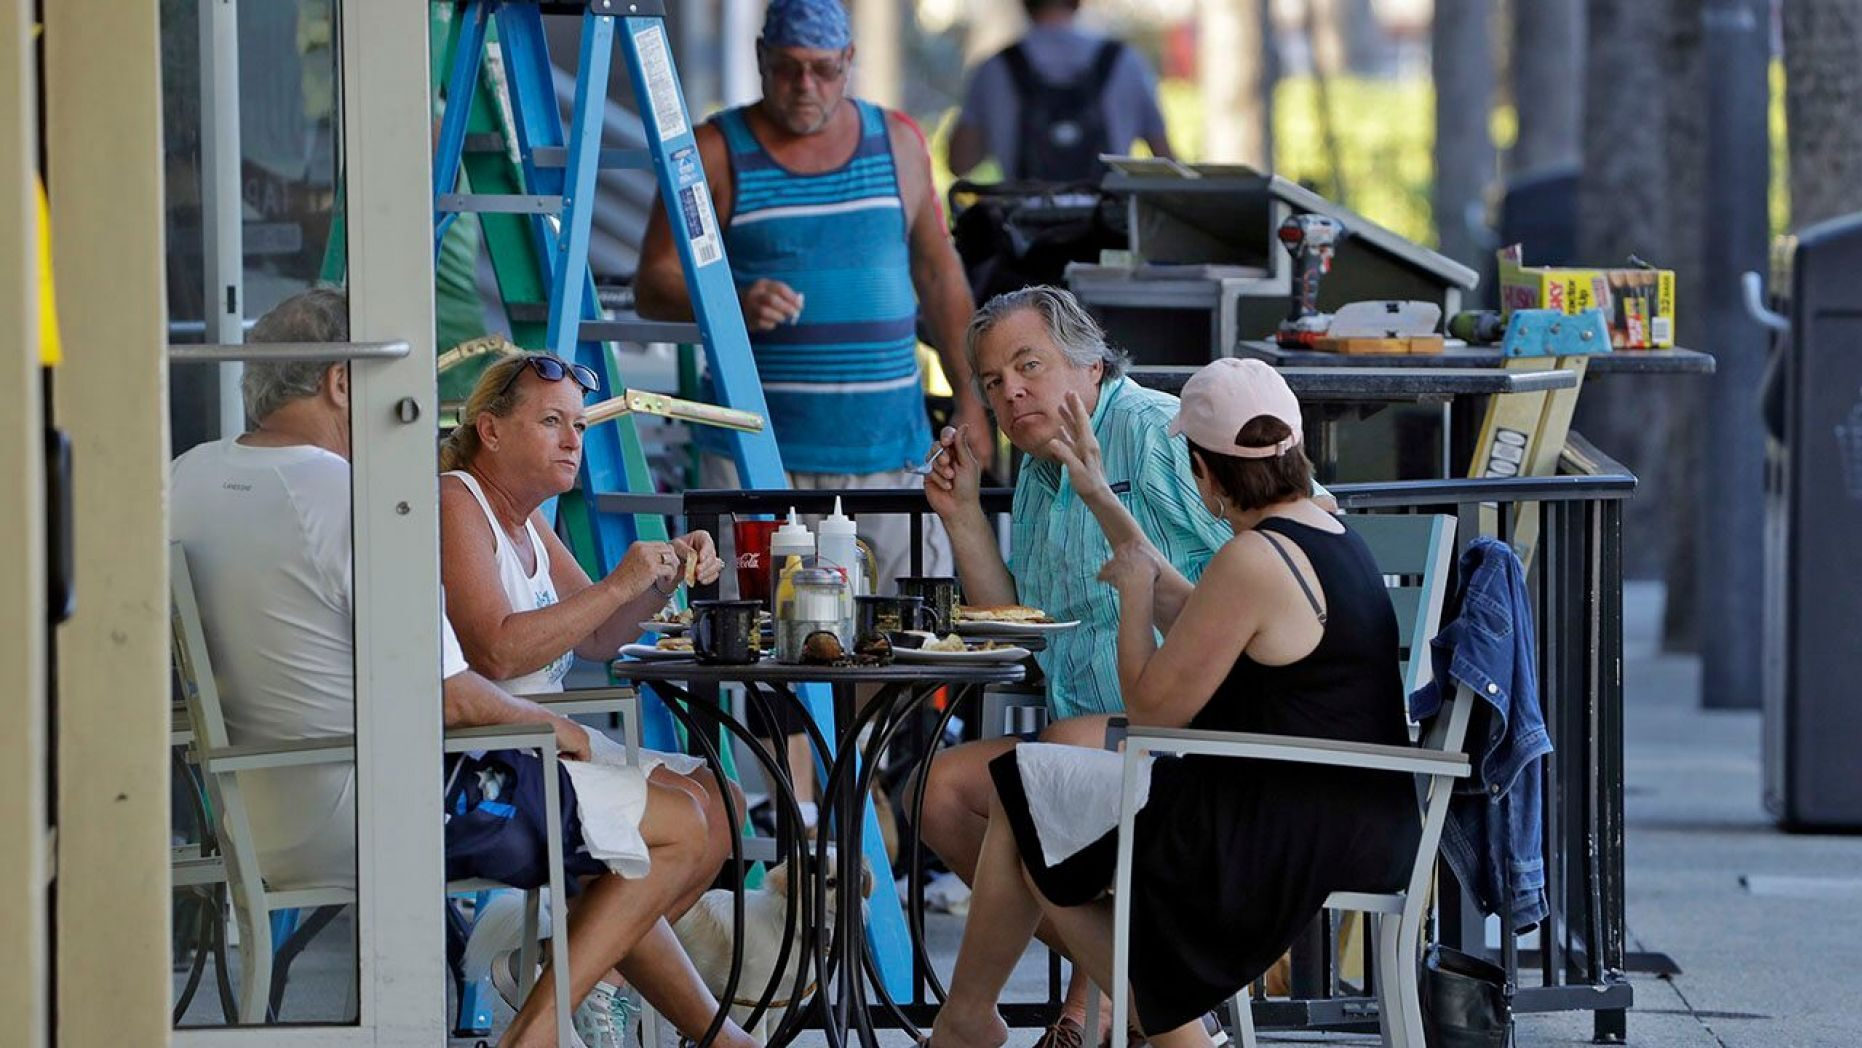 People have breakfast at a cafe Monday in Clearwater Beach, Fla.,